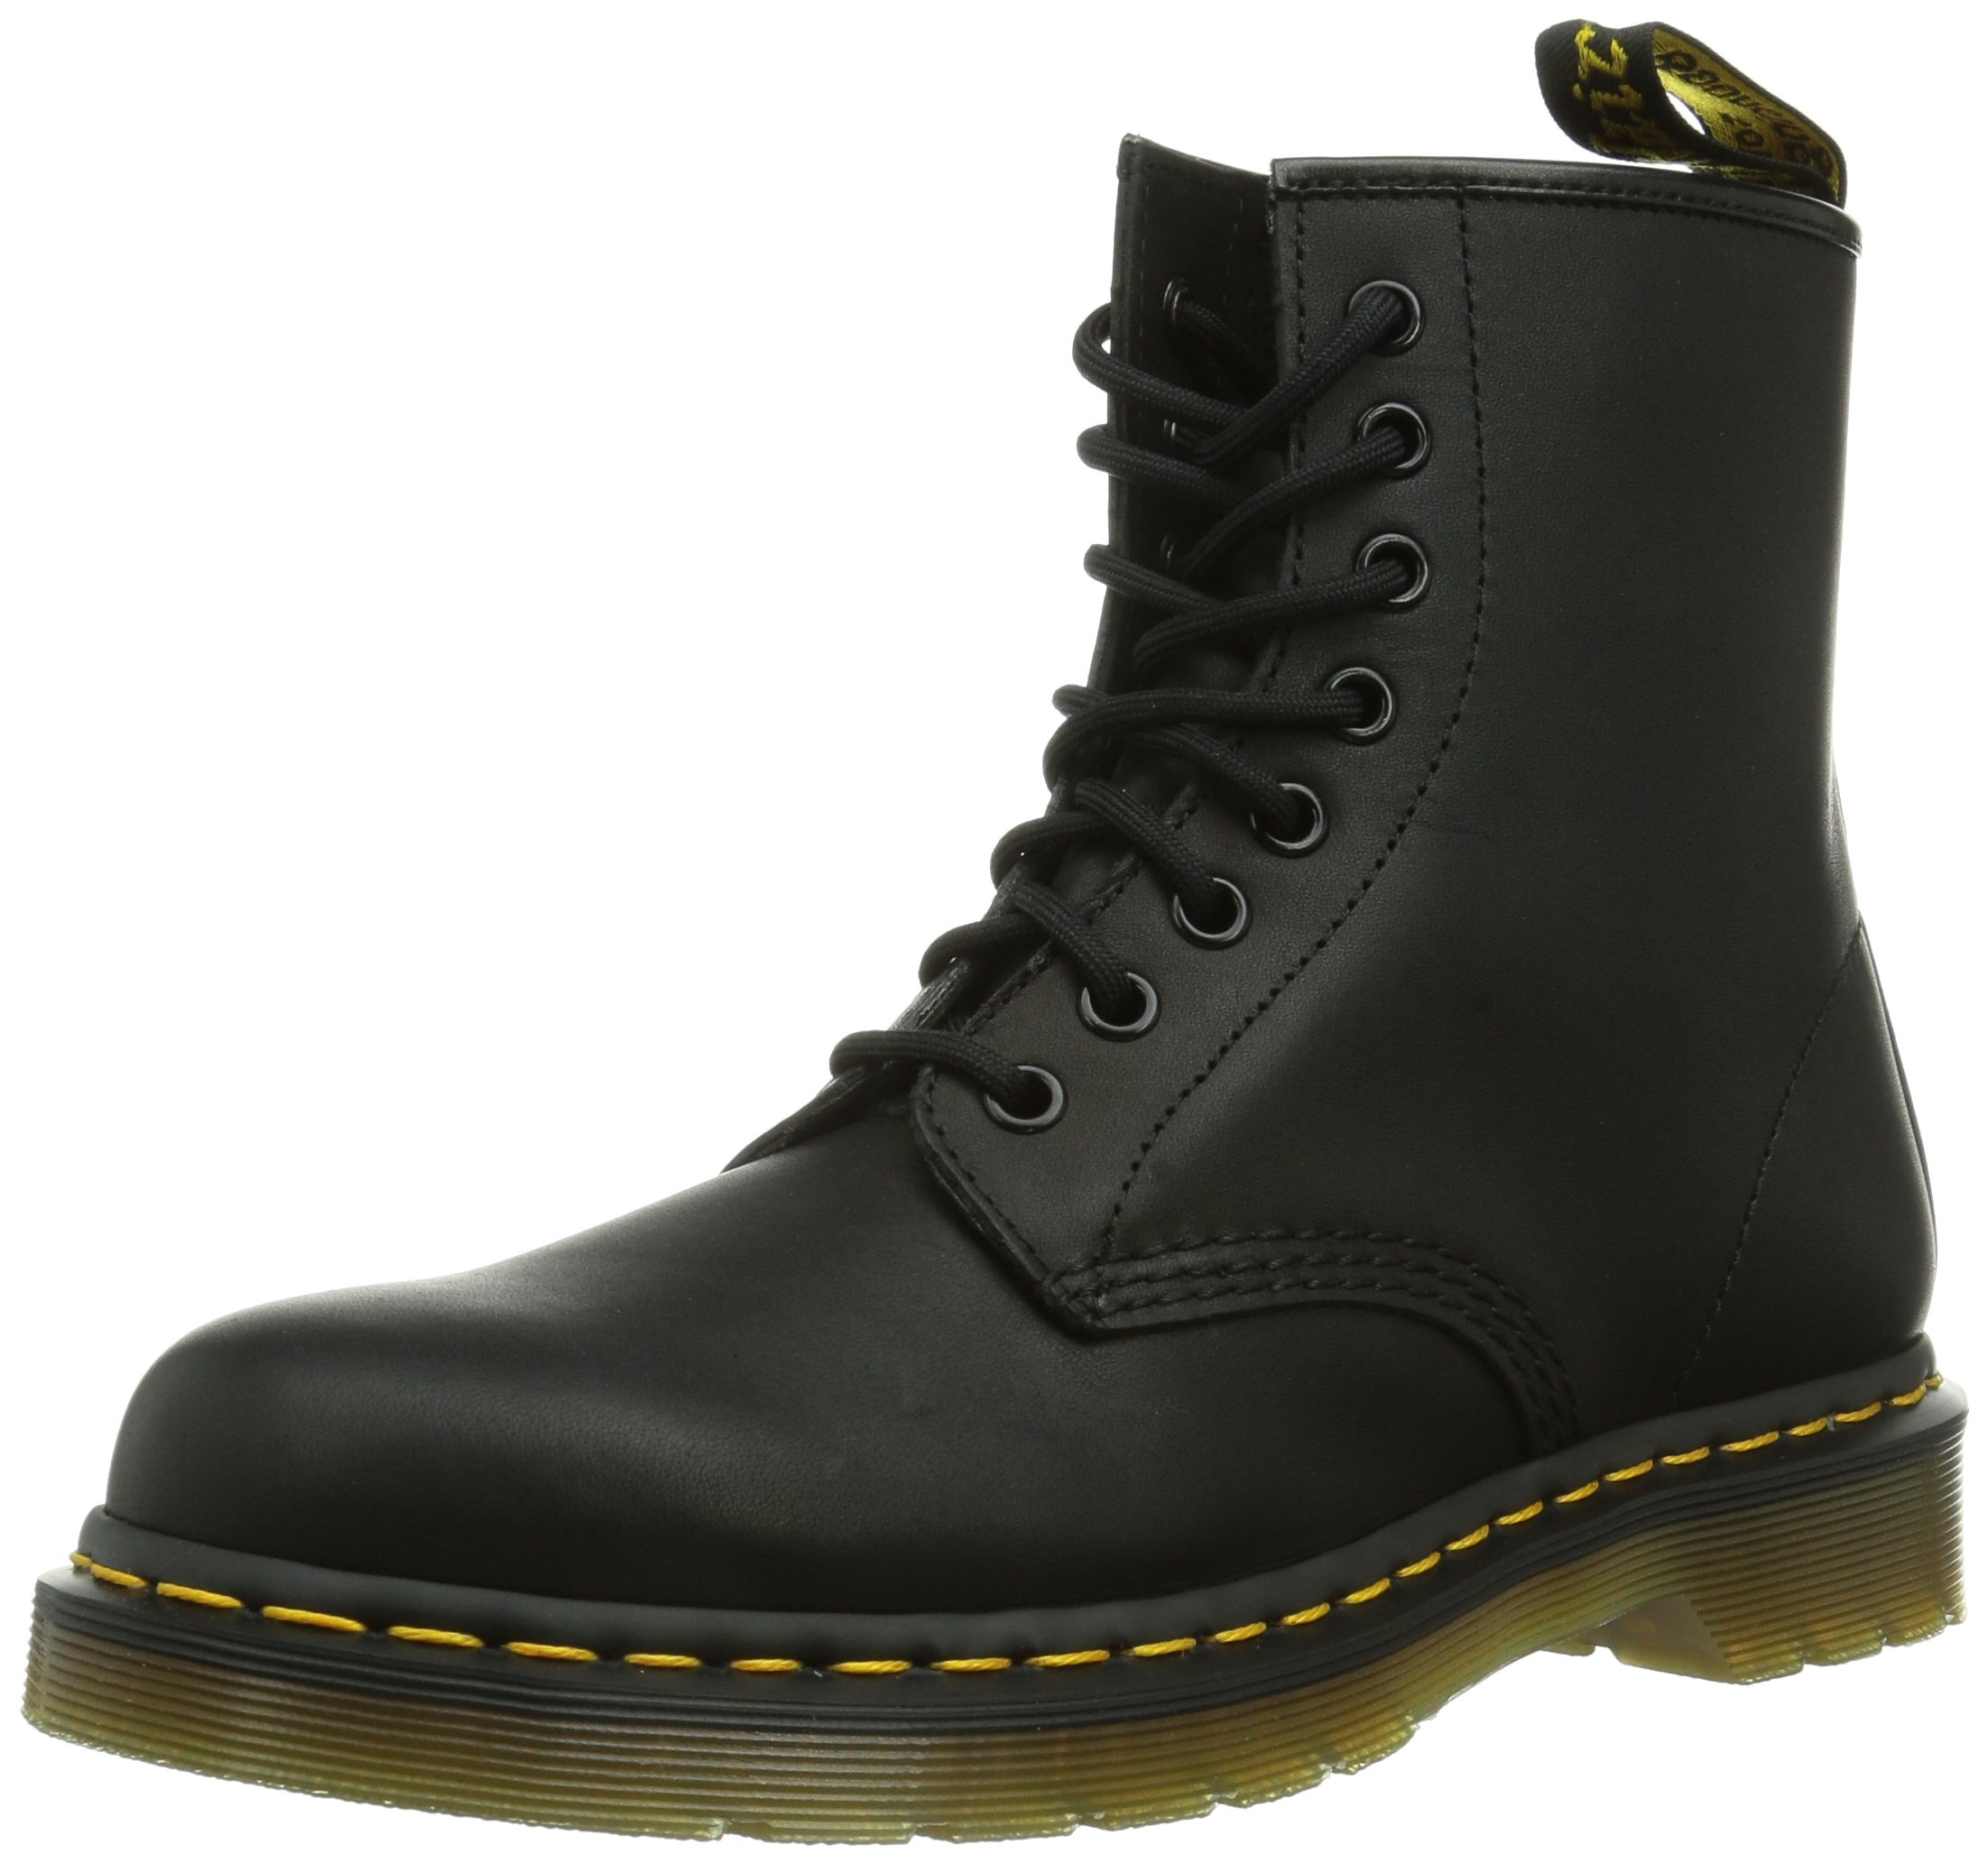 Dr. Martens 1460 8 Eye Boot,Black Greasy,10 UK/11 M US